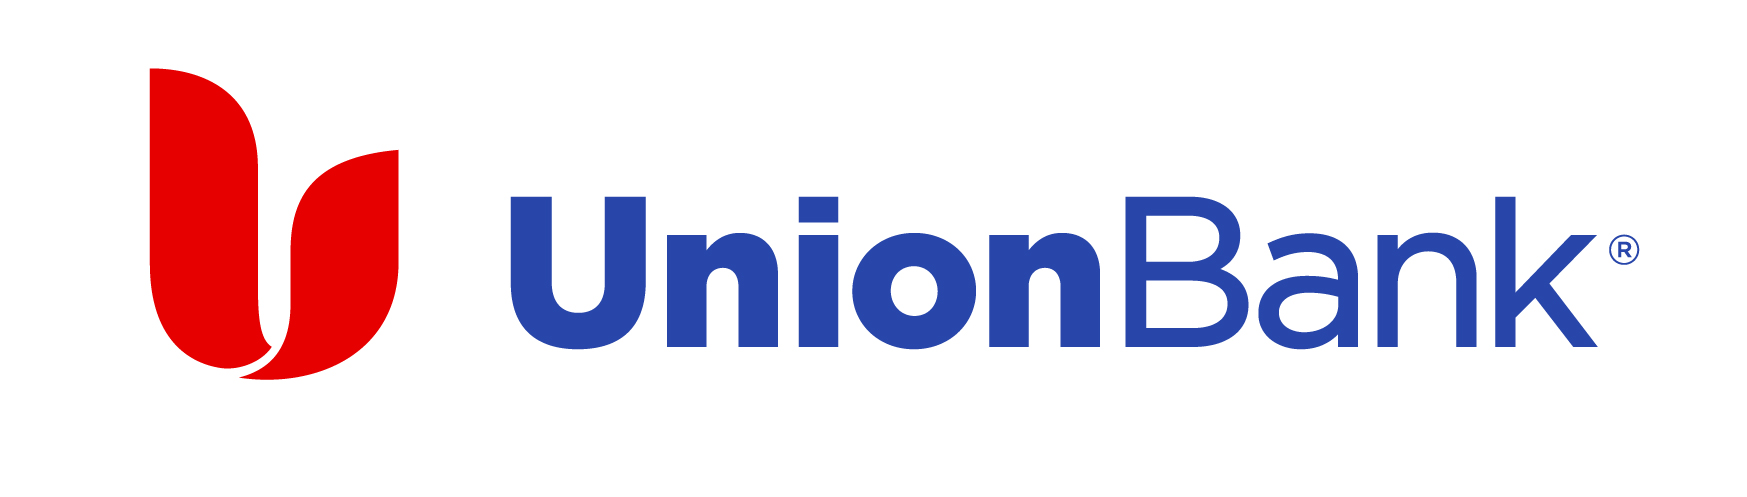 Union Bank proud sponsor of UBGC